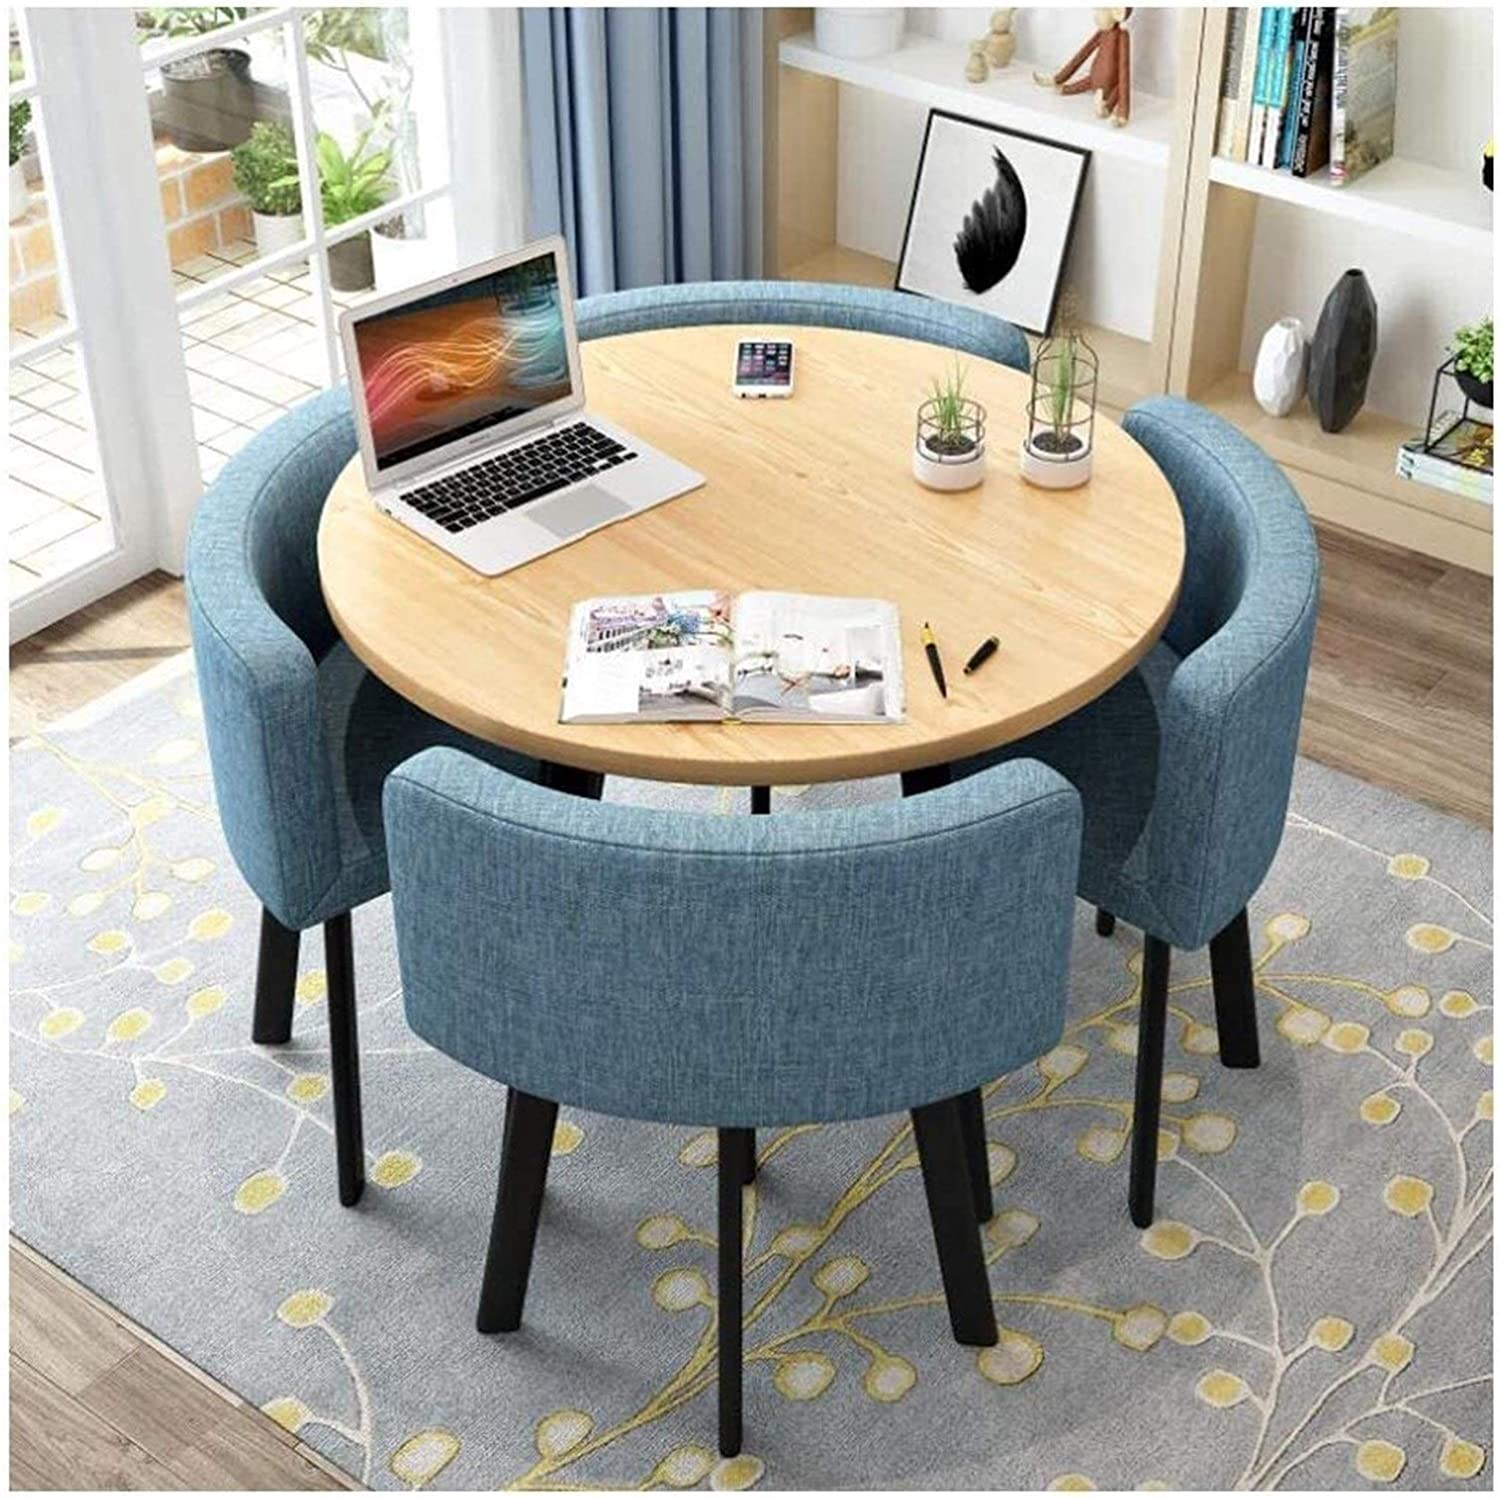 WANGLX Dedication Dining Table Set Credence for Kitchen and Round Furni Room